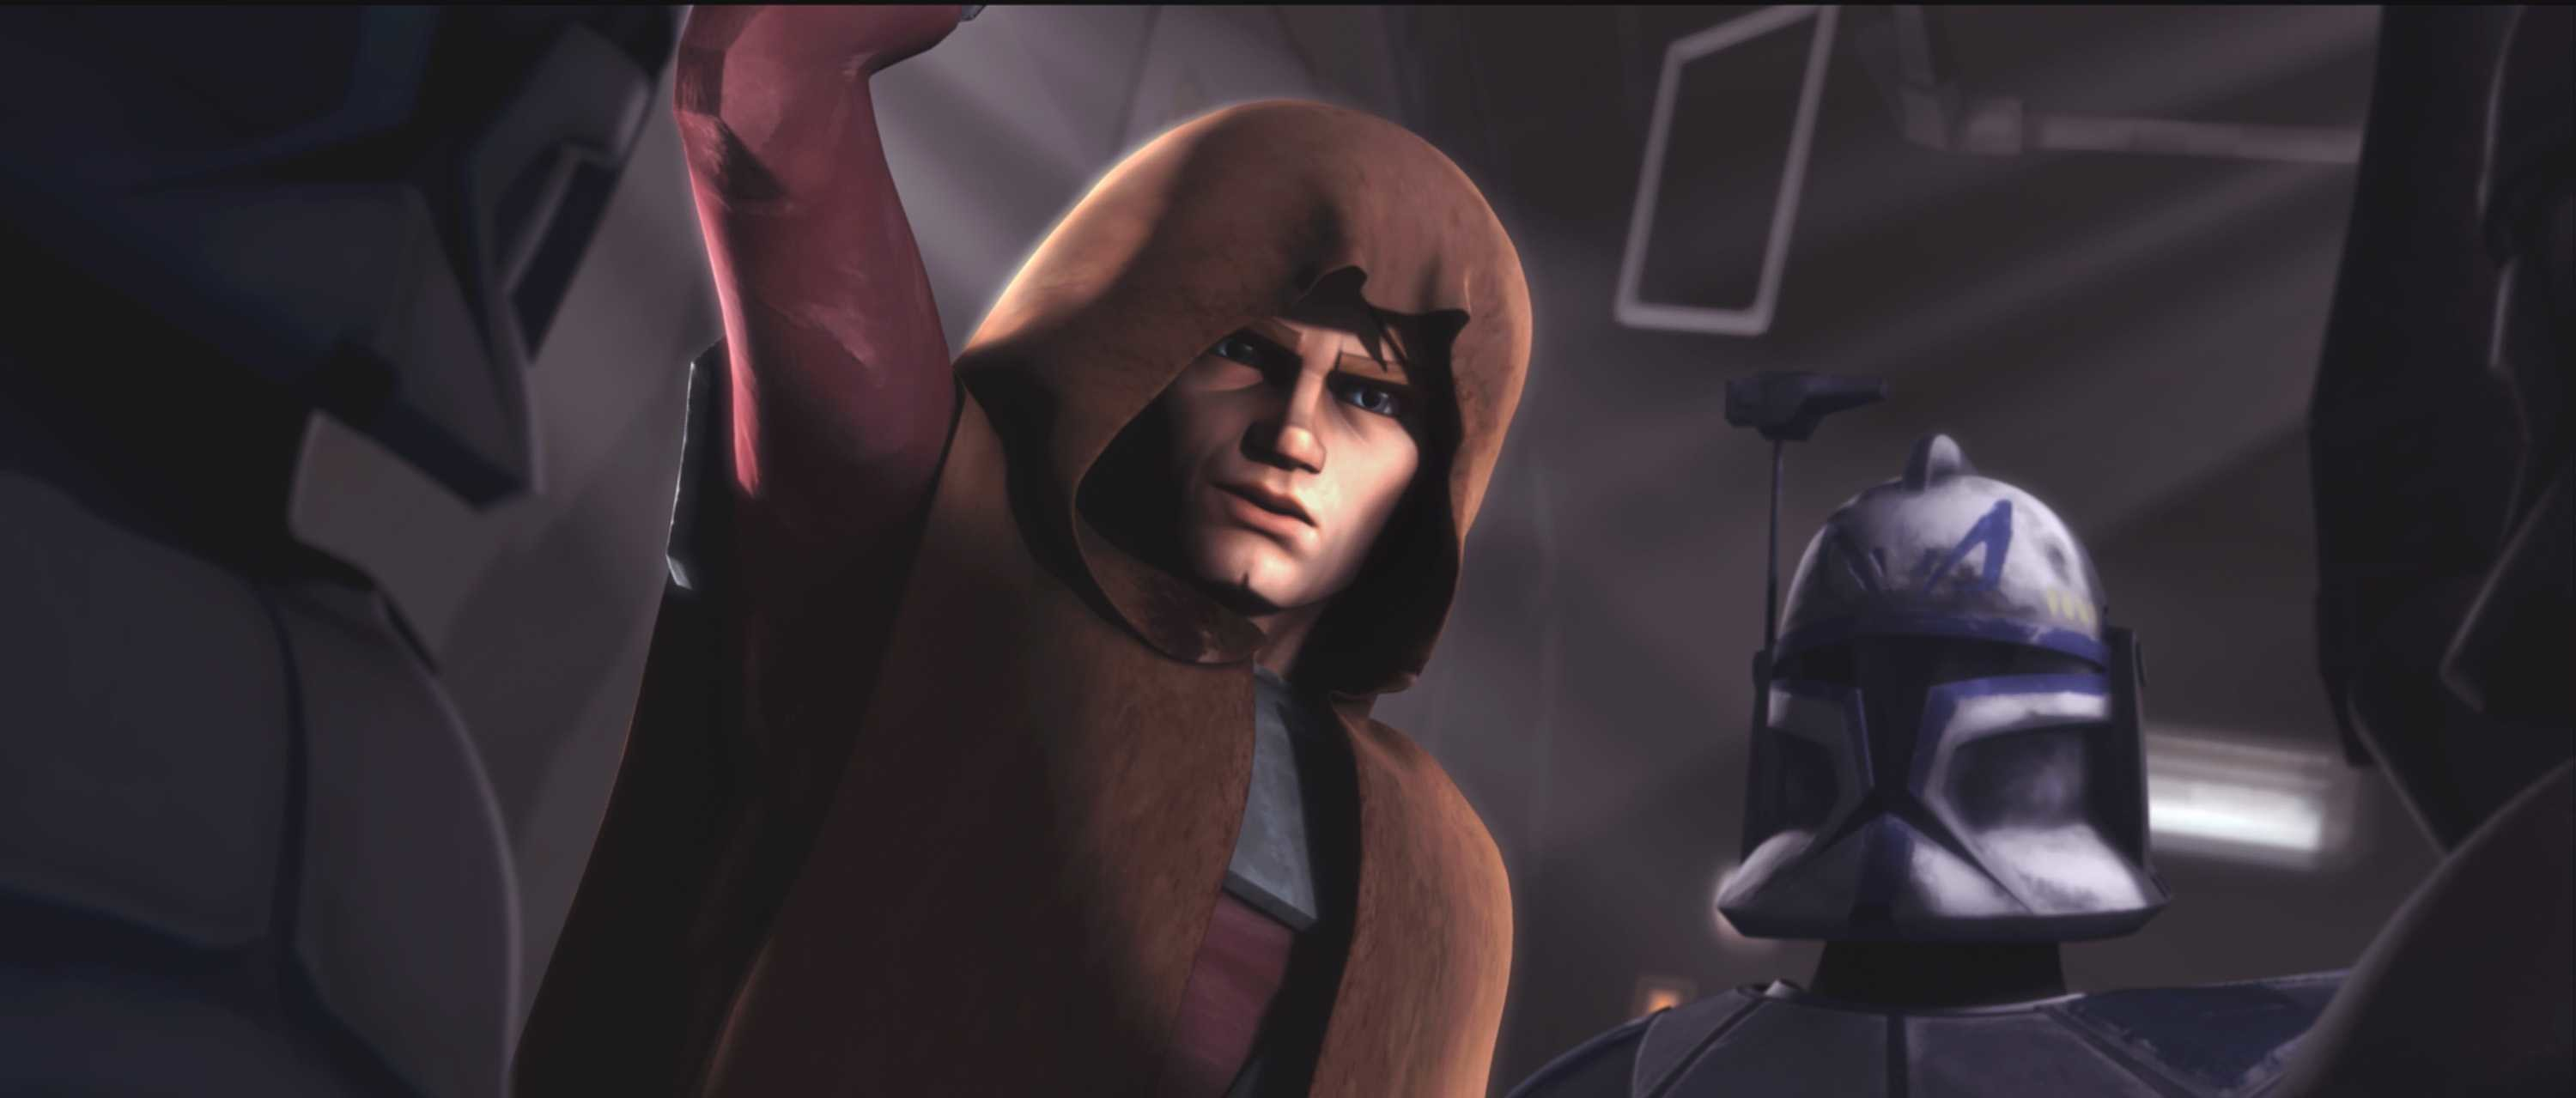 3000x1279 View Original Image. Star Wars: The Clone Wars. Jedi Knight Anakin Skywalker